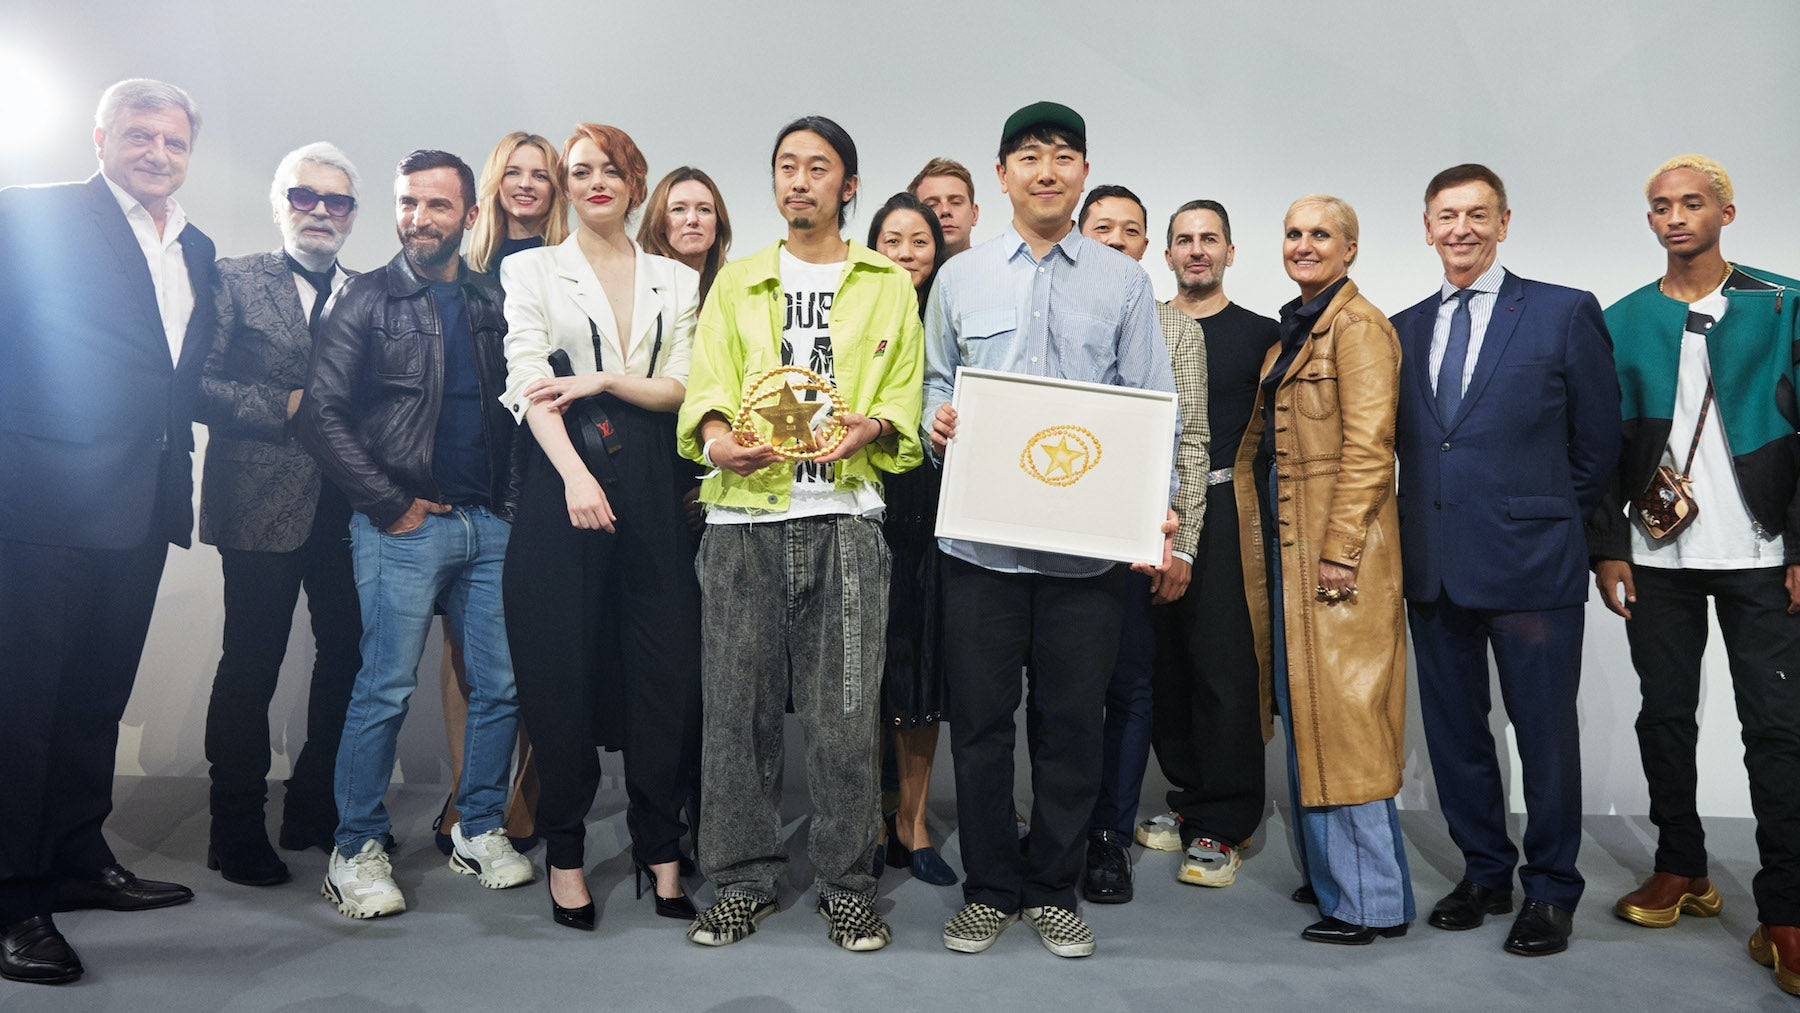 LVMH Prize 2018 winners Masayuki Ino and Rok Hwang along with the jury | Photo: Benoit Peverelli